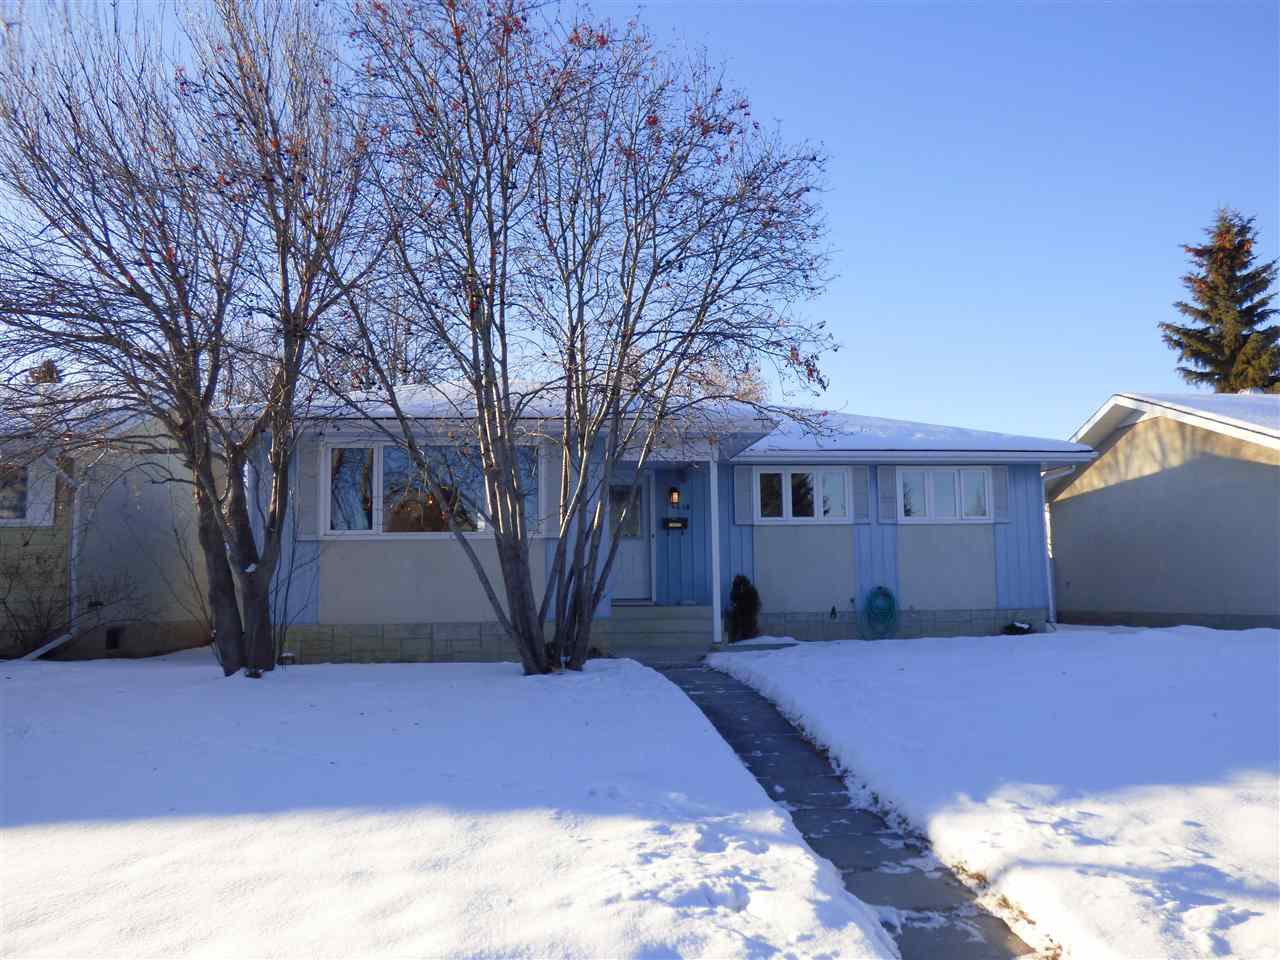 Main Photo: 4110 SOUTH PARK Drive: Leduc House for sale : MLS®# E4182652